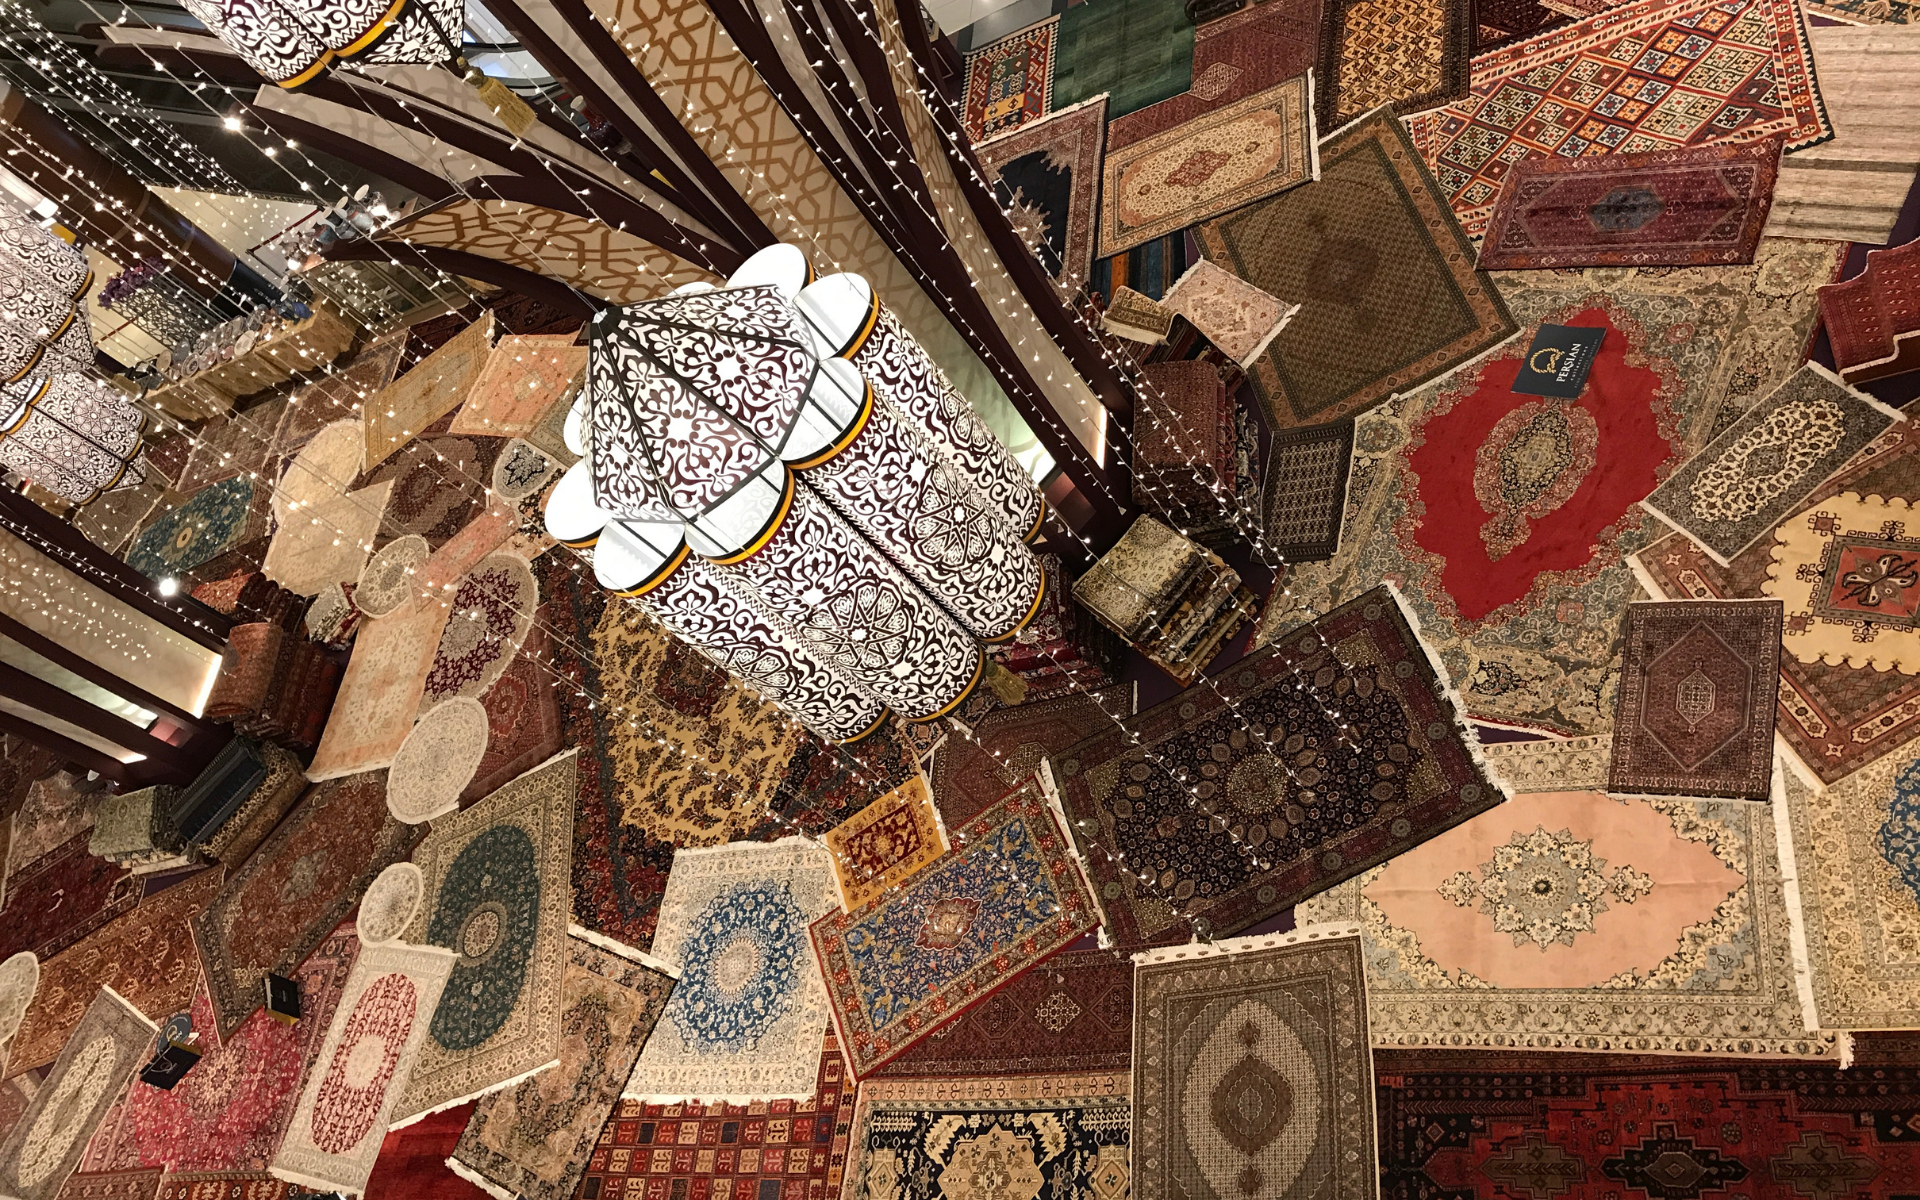 Persian Carpets are the culmination of centuries of craftsmanship